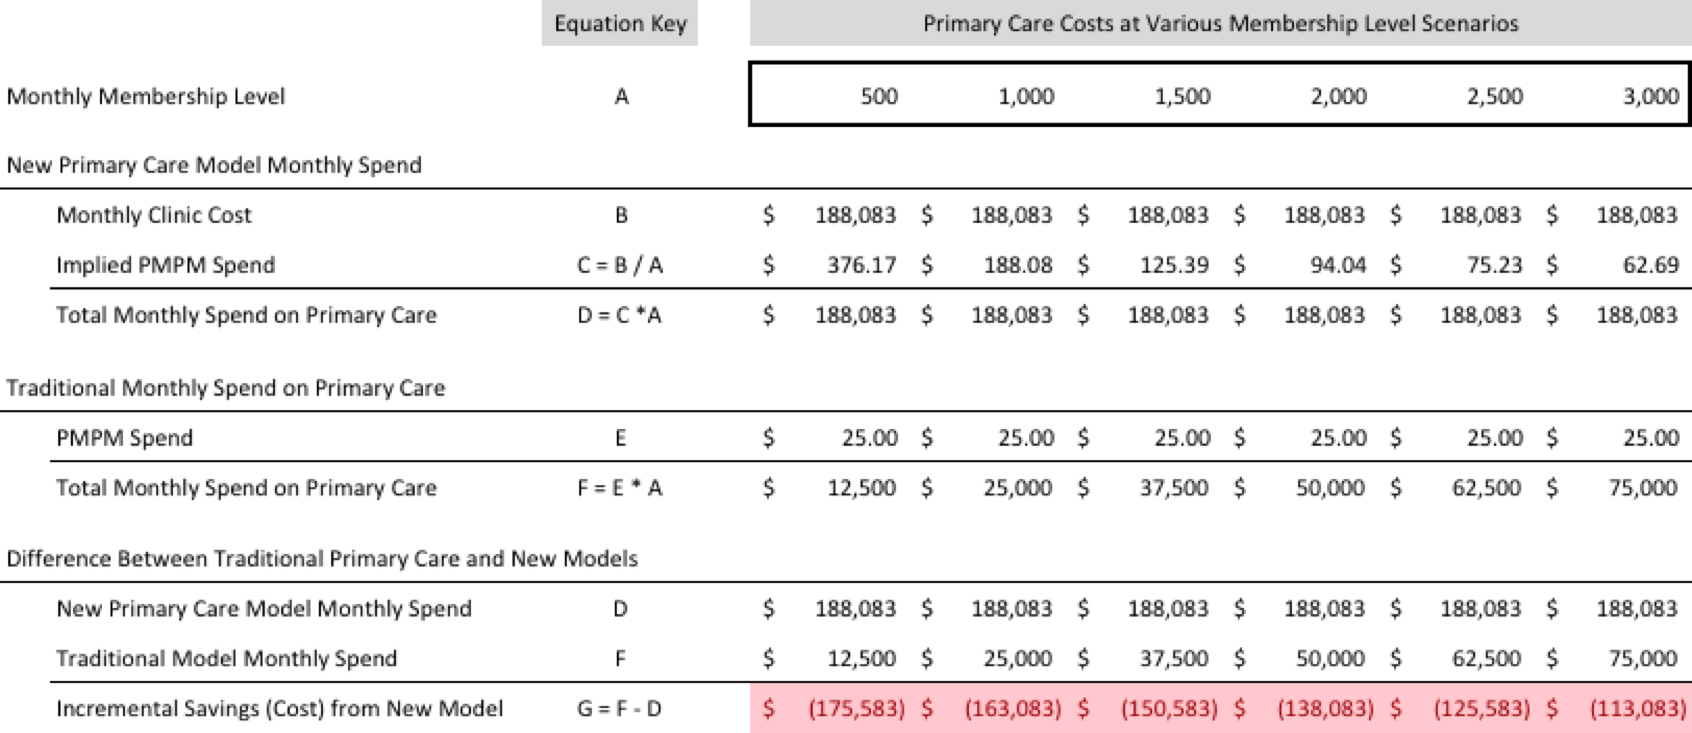 The Cost Equation for New Primary Care Models in Existing